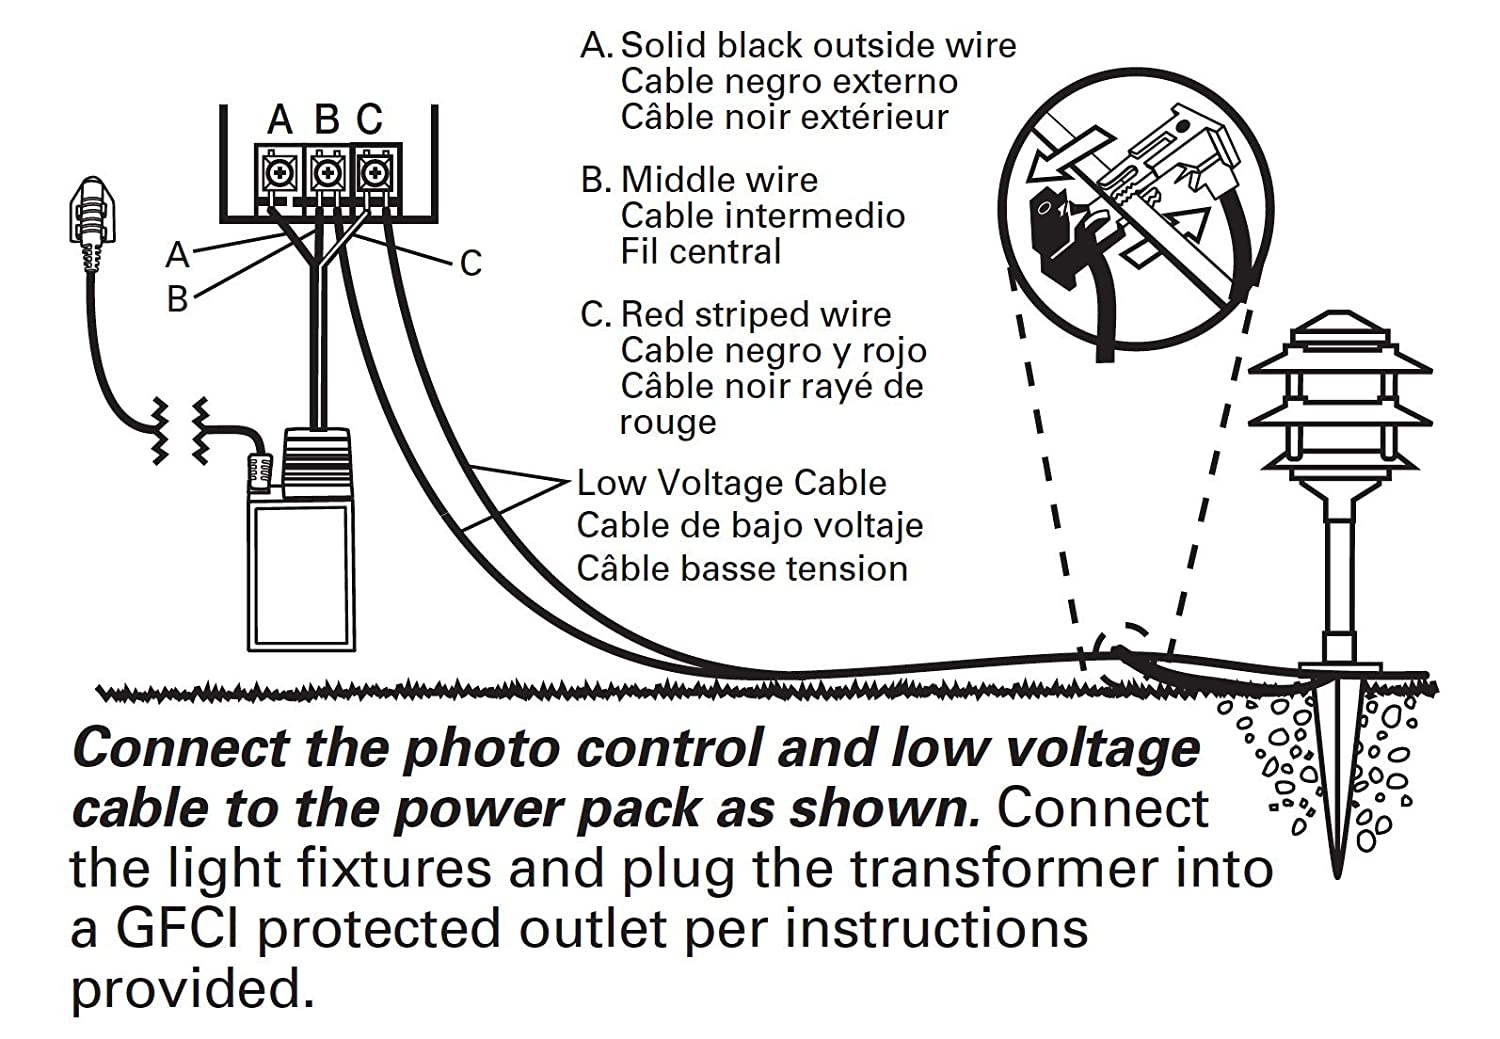 low voltage wiring diagram low image wiring diagram transformers low voltage lighting wiring diagram transformers on low voltage wiring diagram